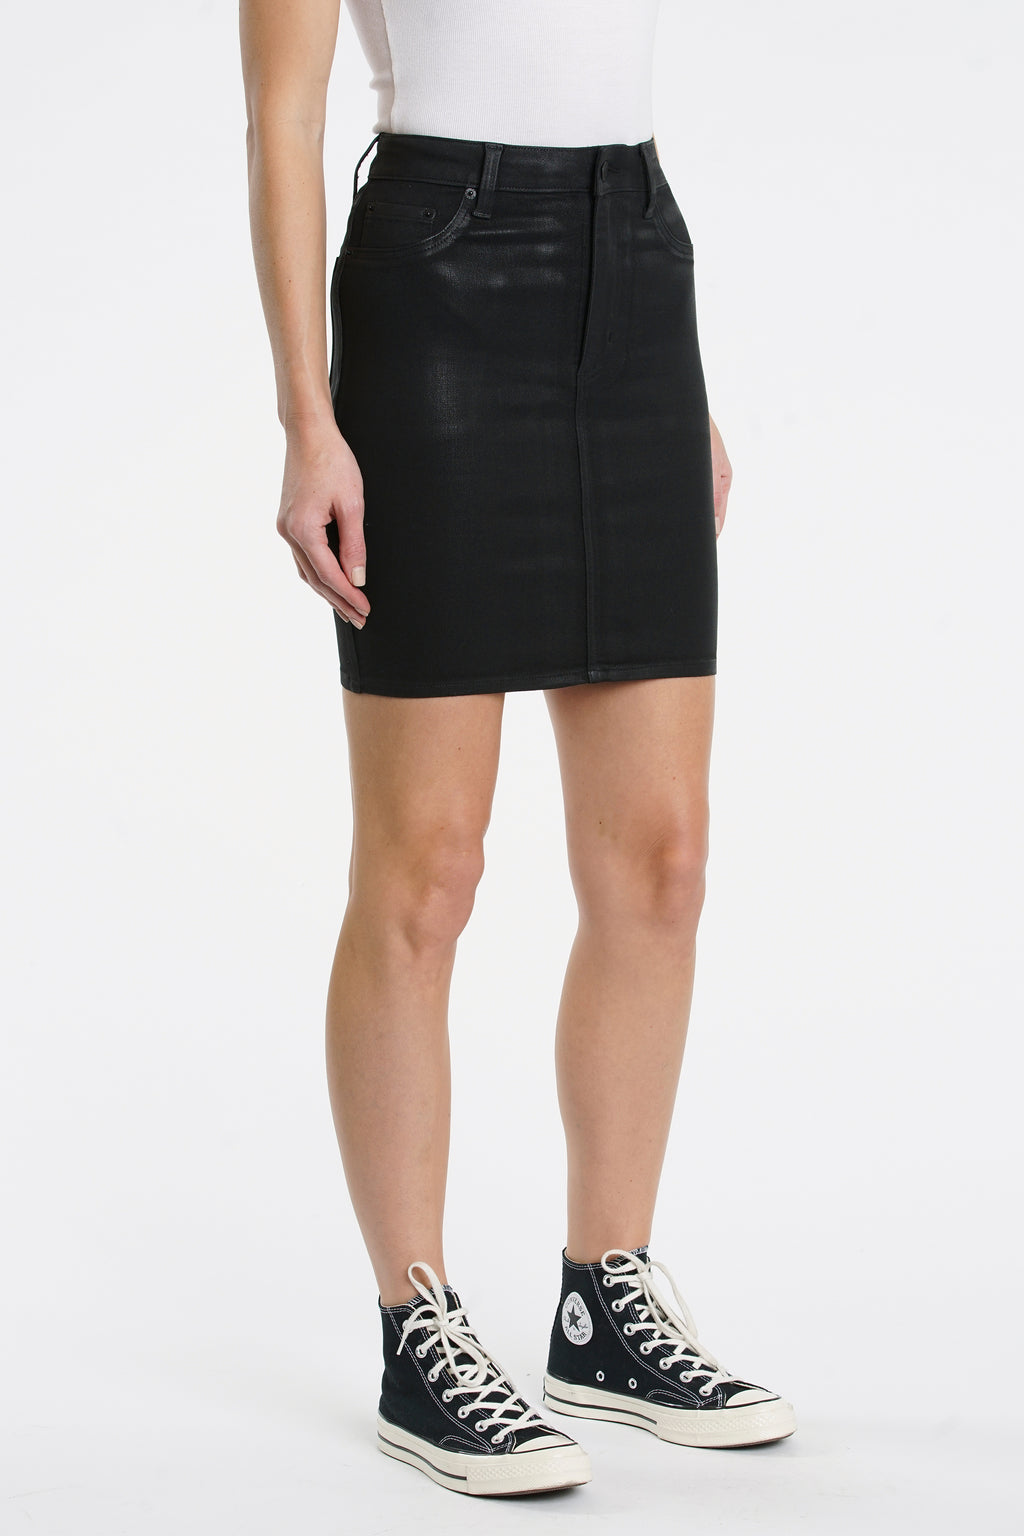 Maude Pencil Skirt - Coated Black